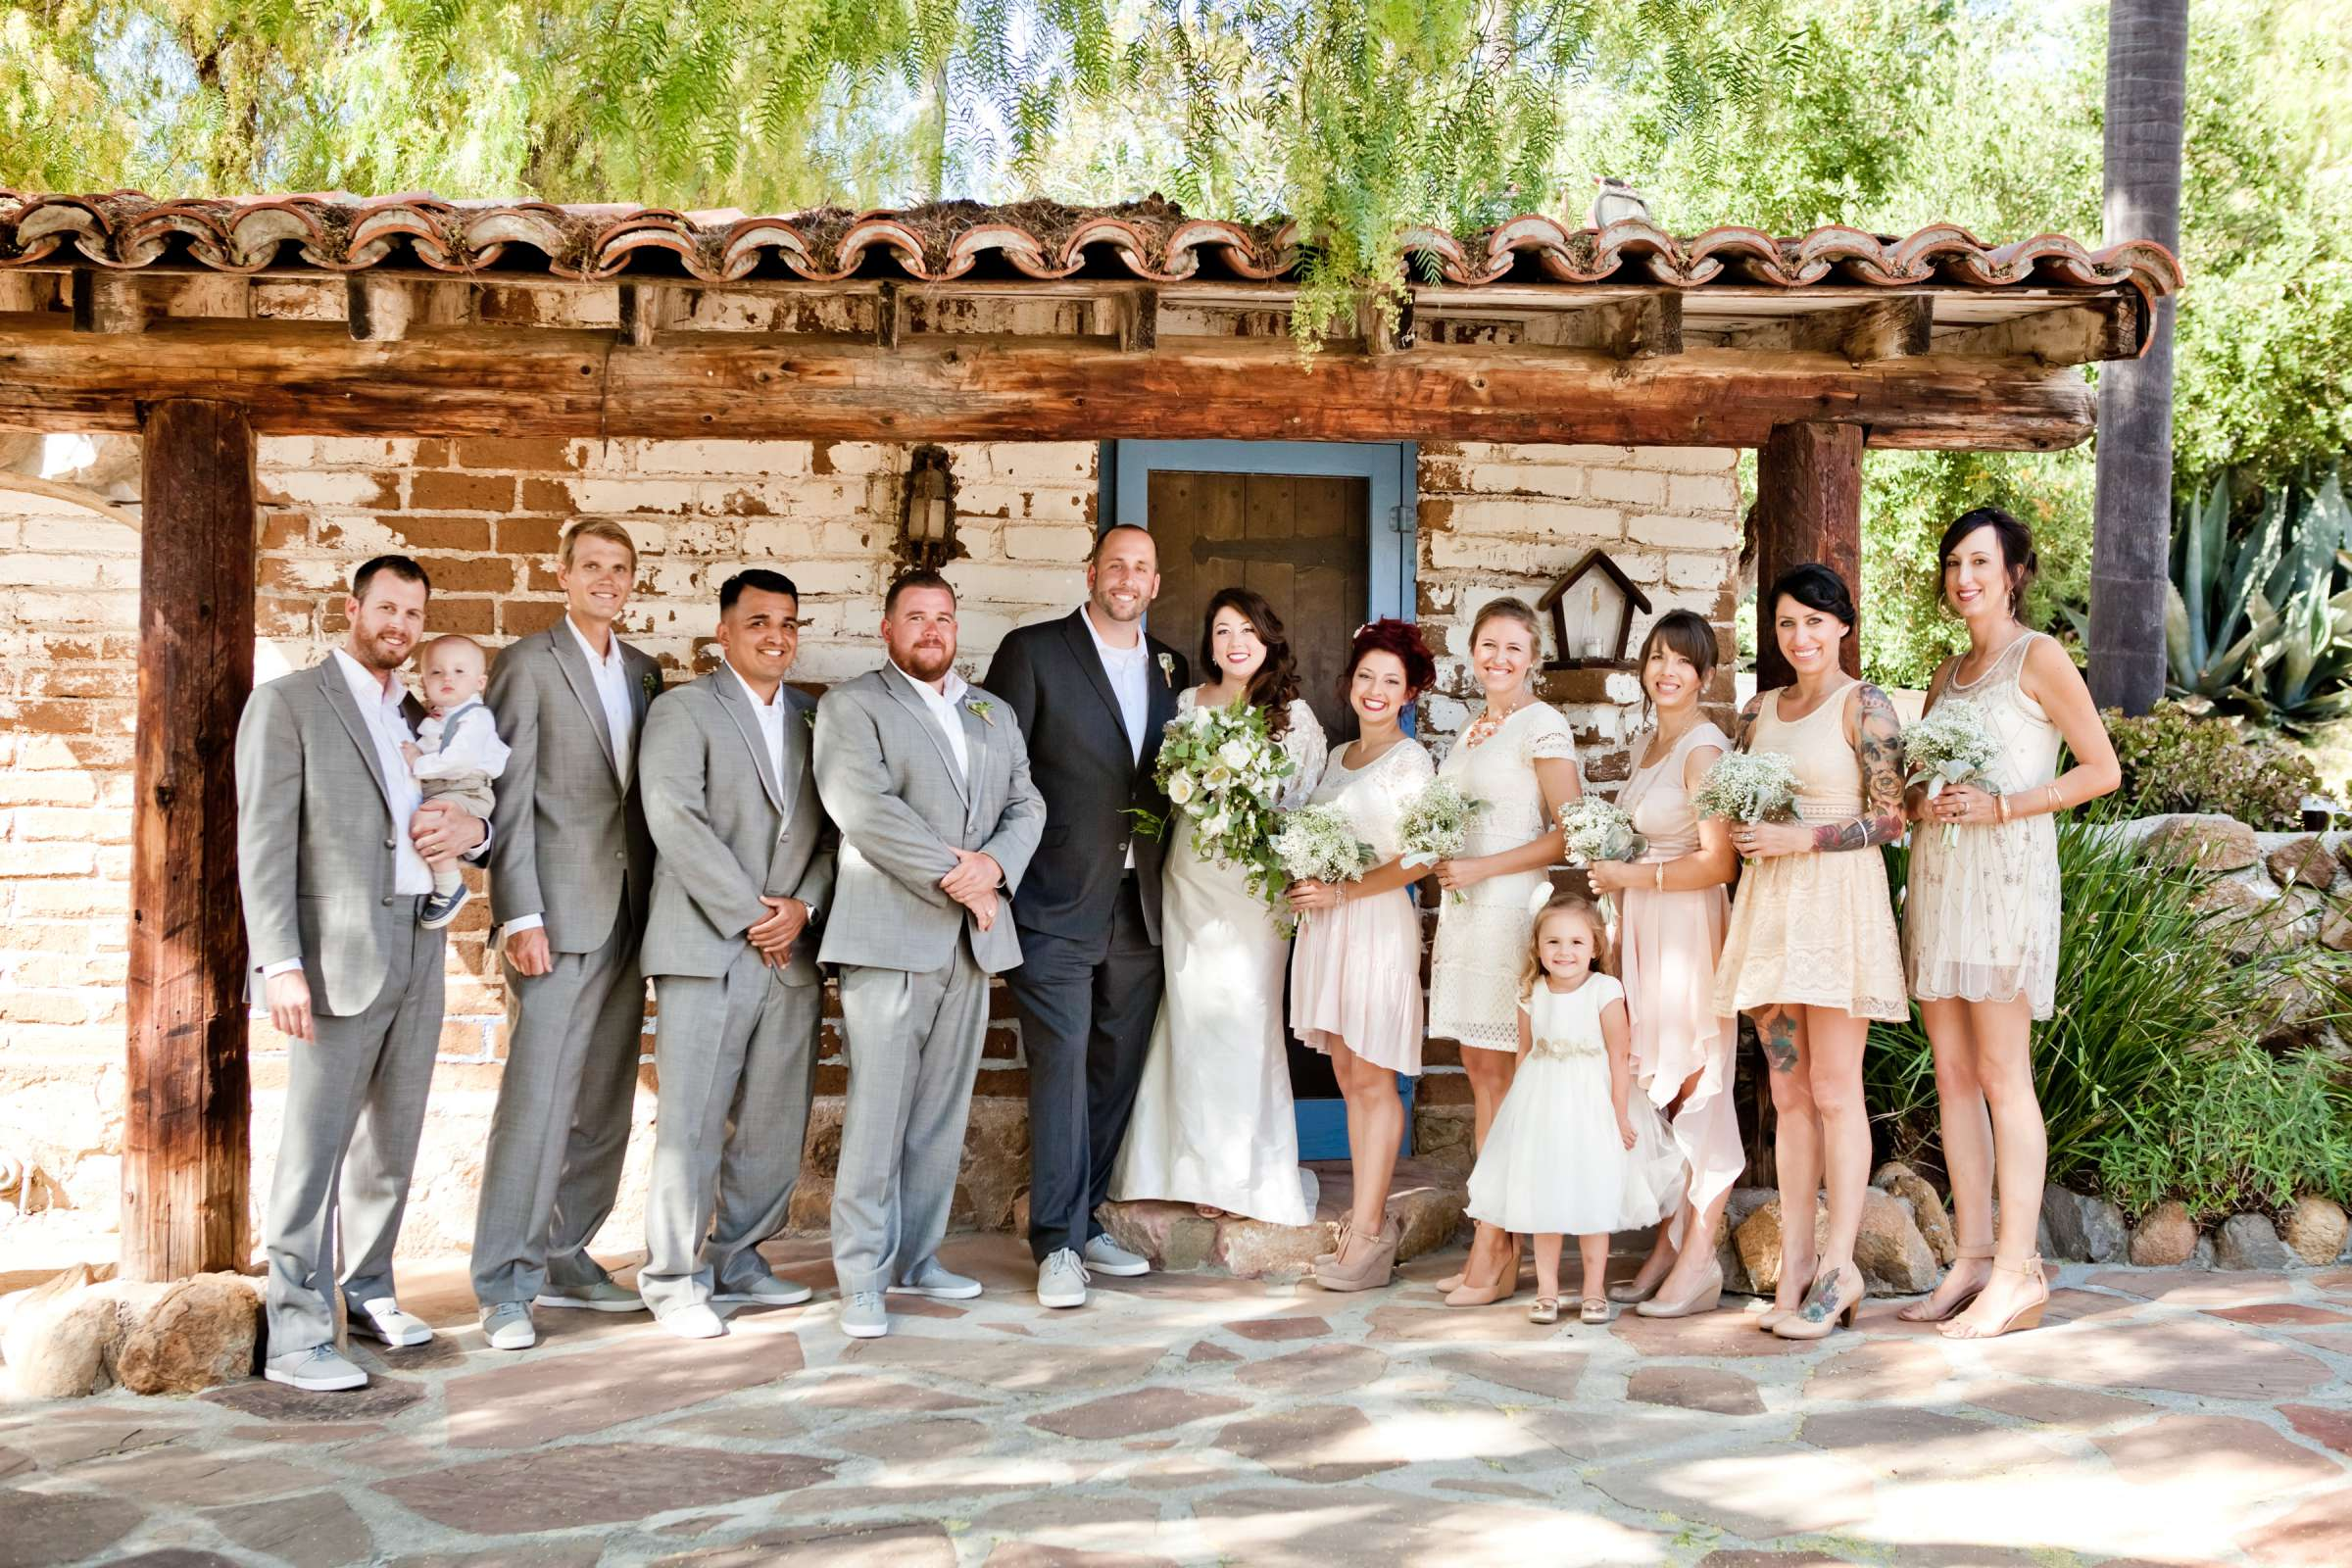 Leo Carrillo Ranch Wedding coordinated by Weddings by Lisa Nicole, Bethany and Aaron Wedding Photo #32 by True Photography